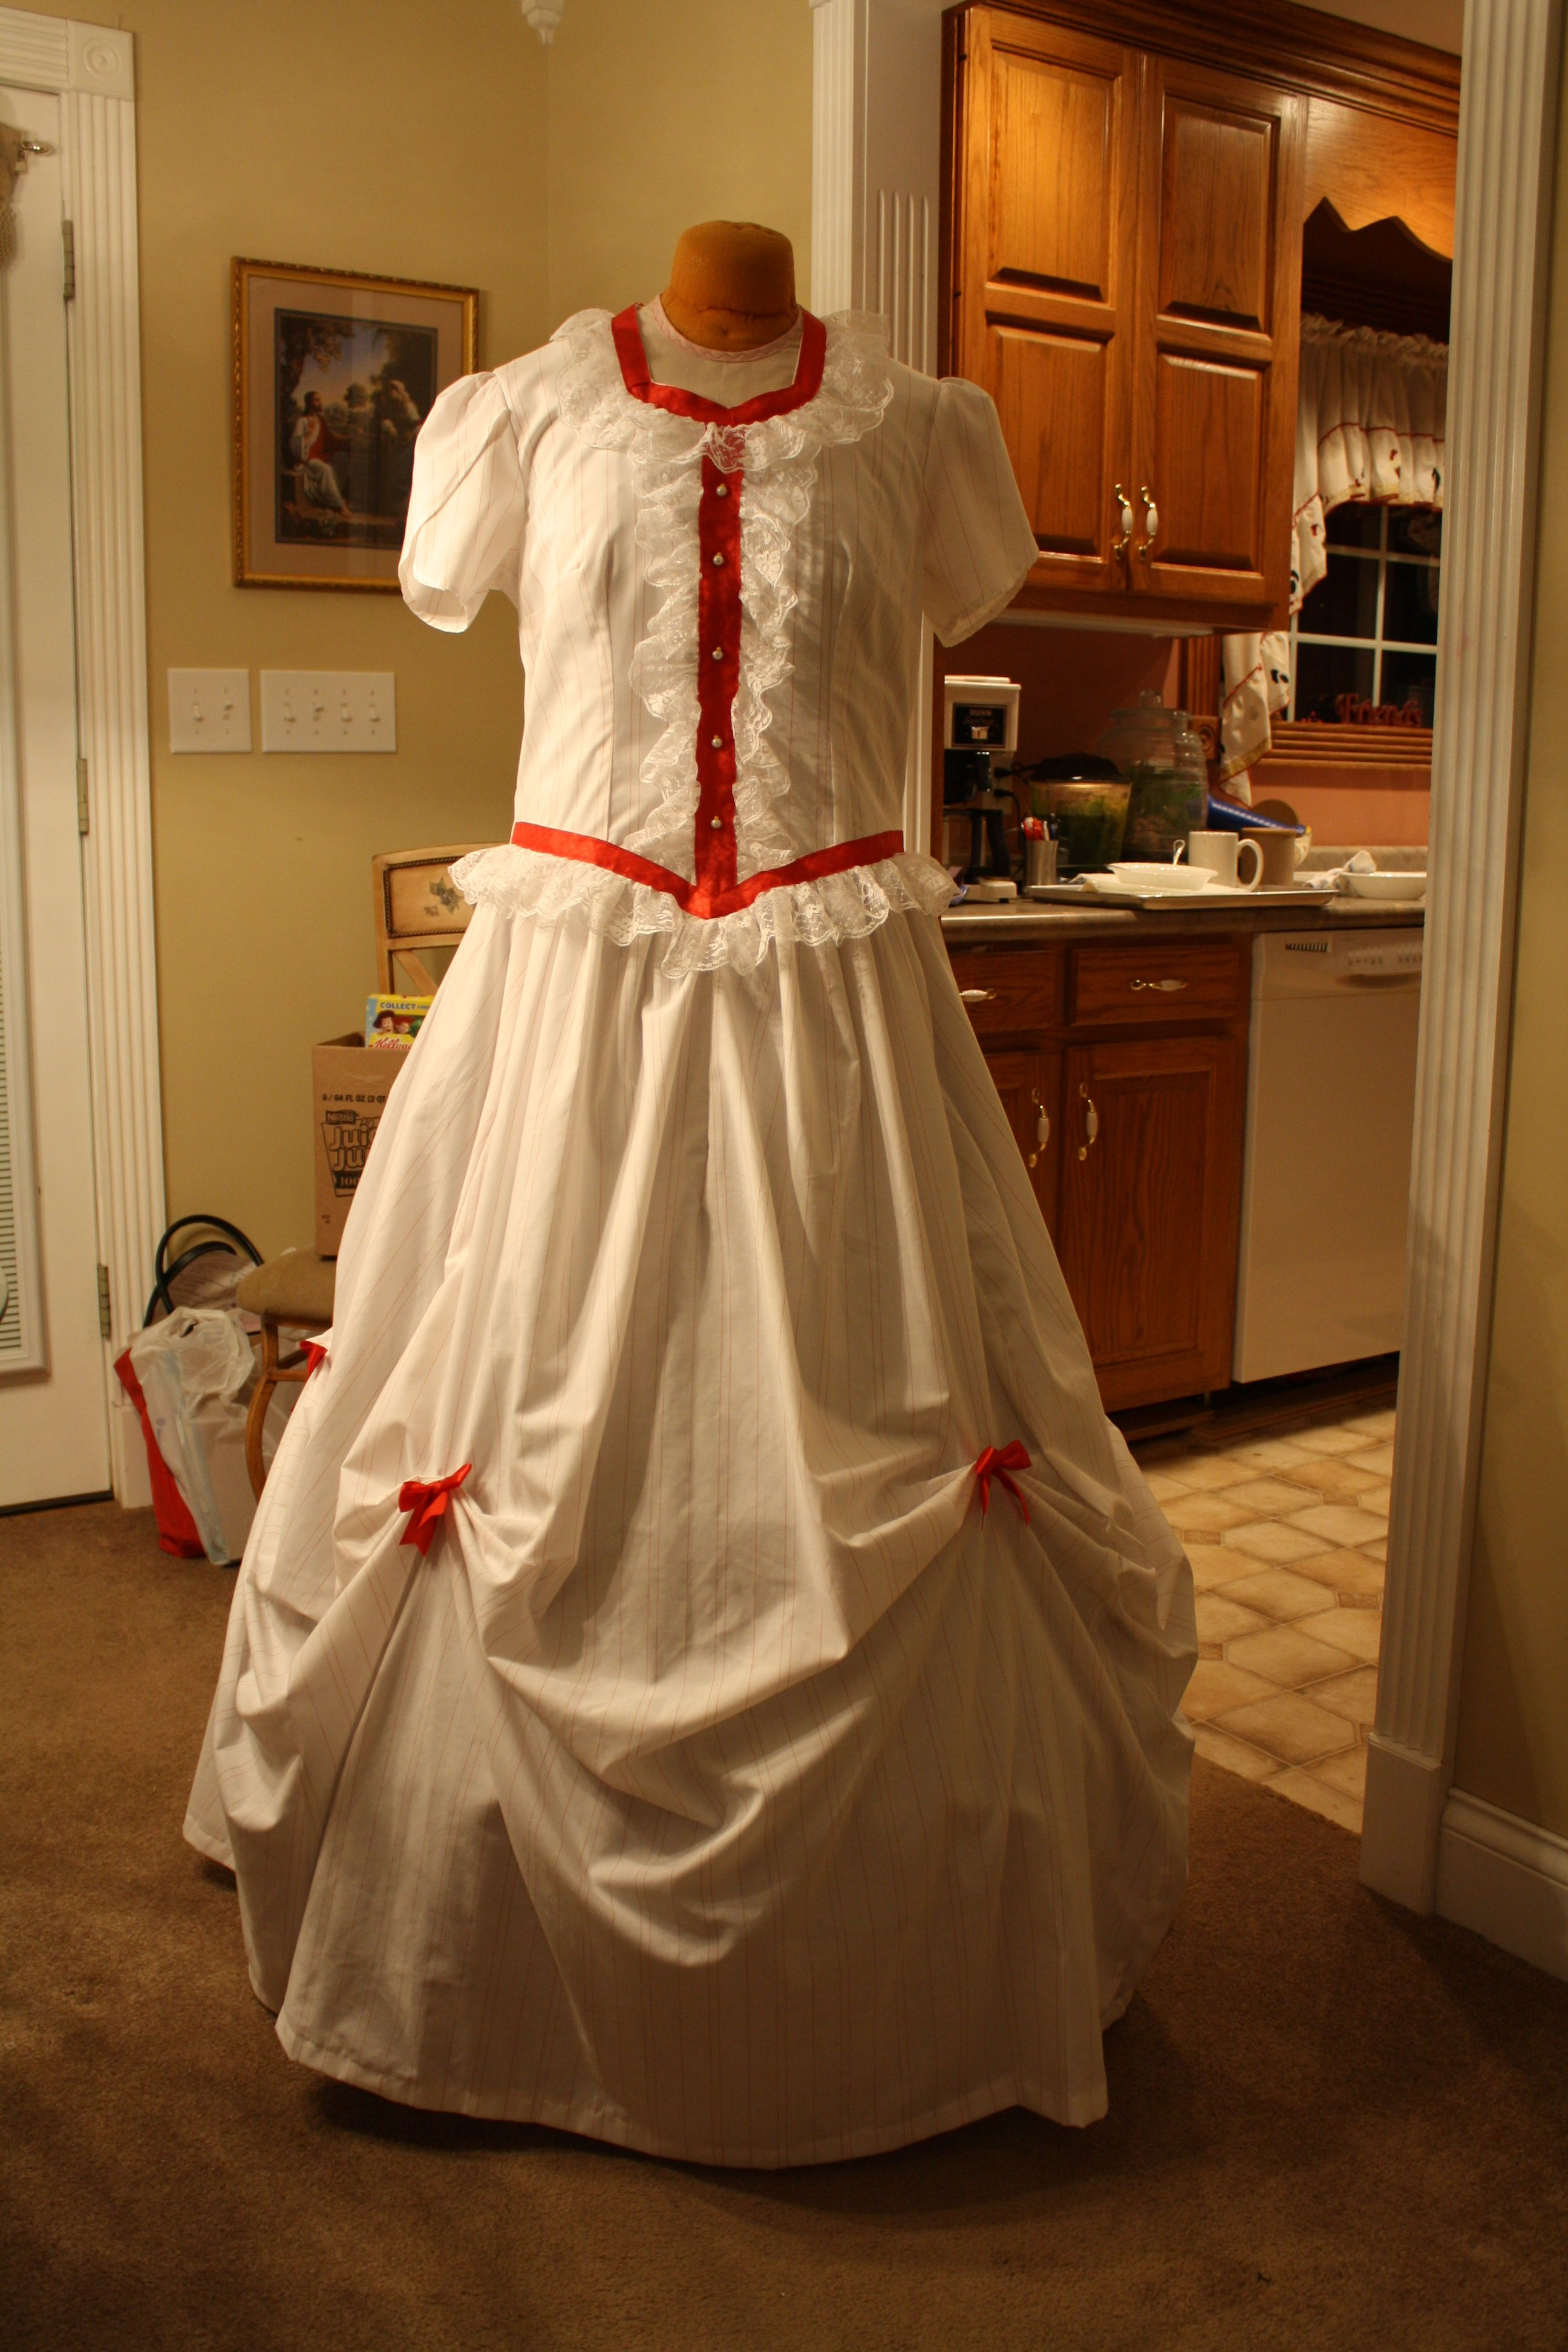 A victorian dress I have for sale on etsy. Victorian